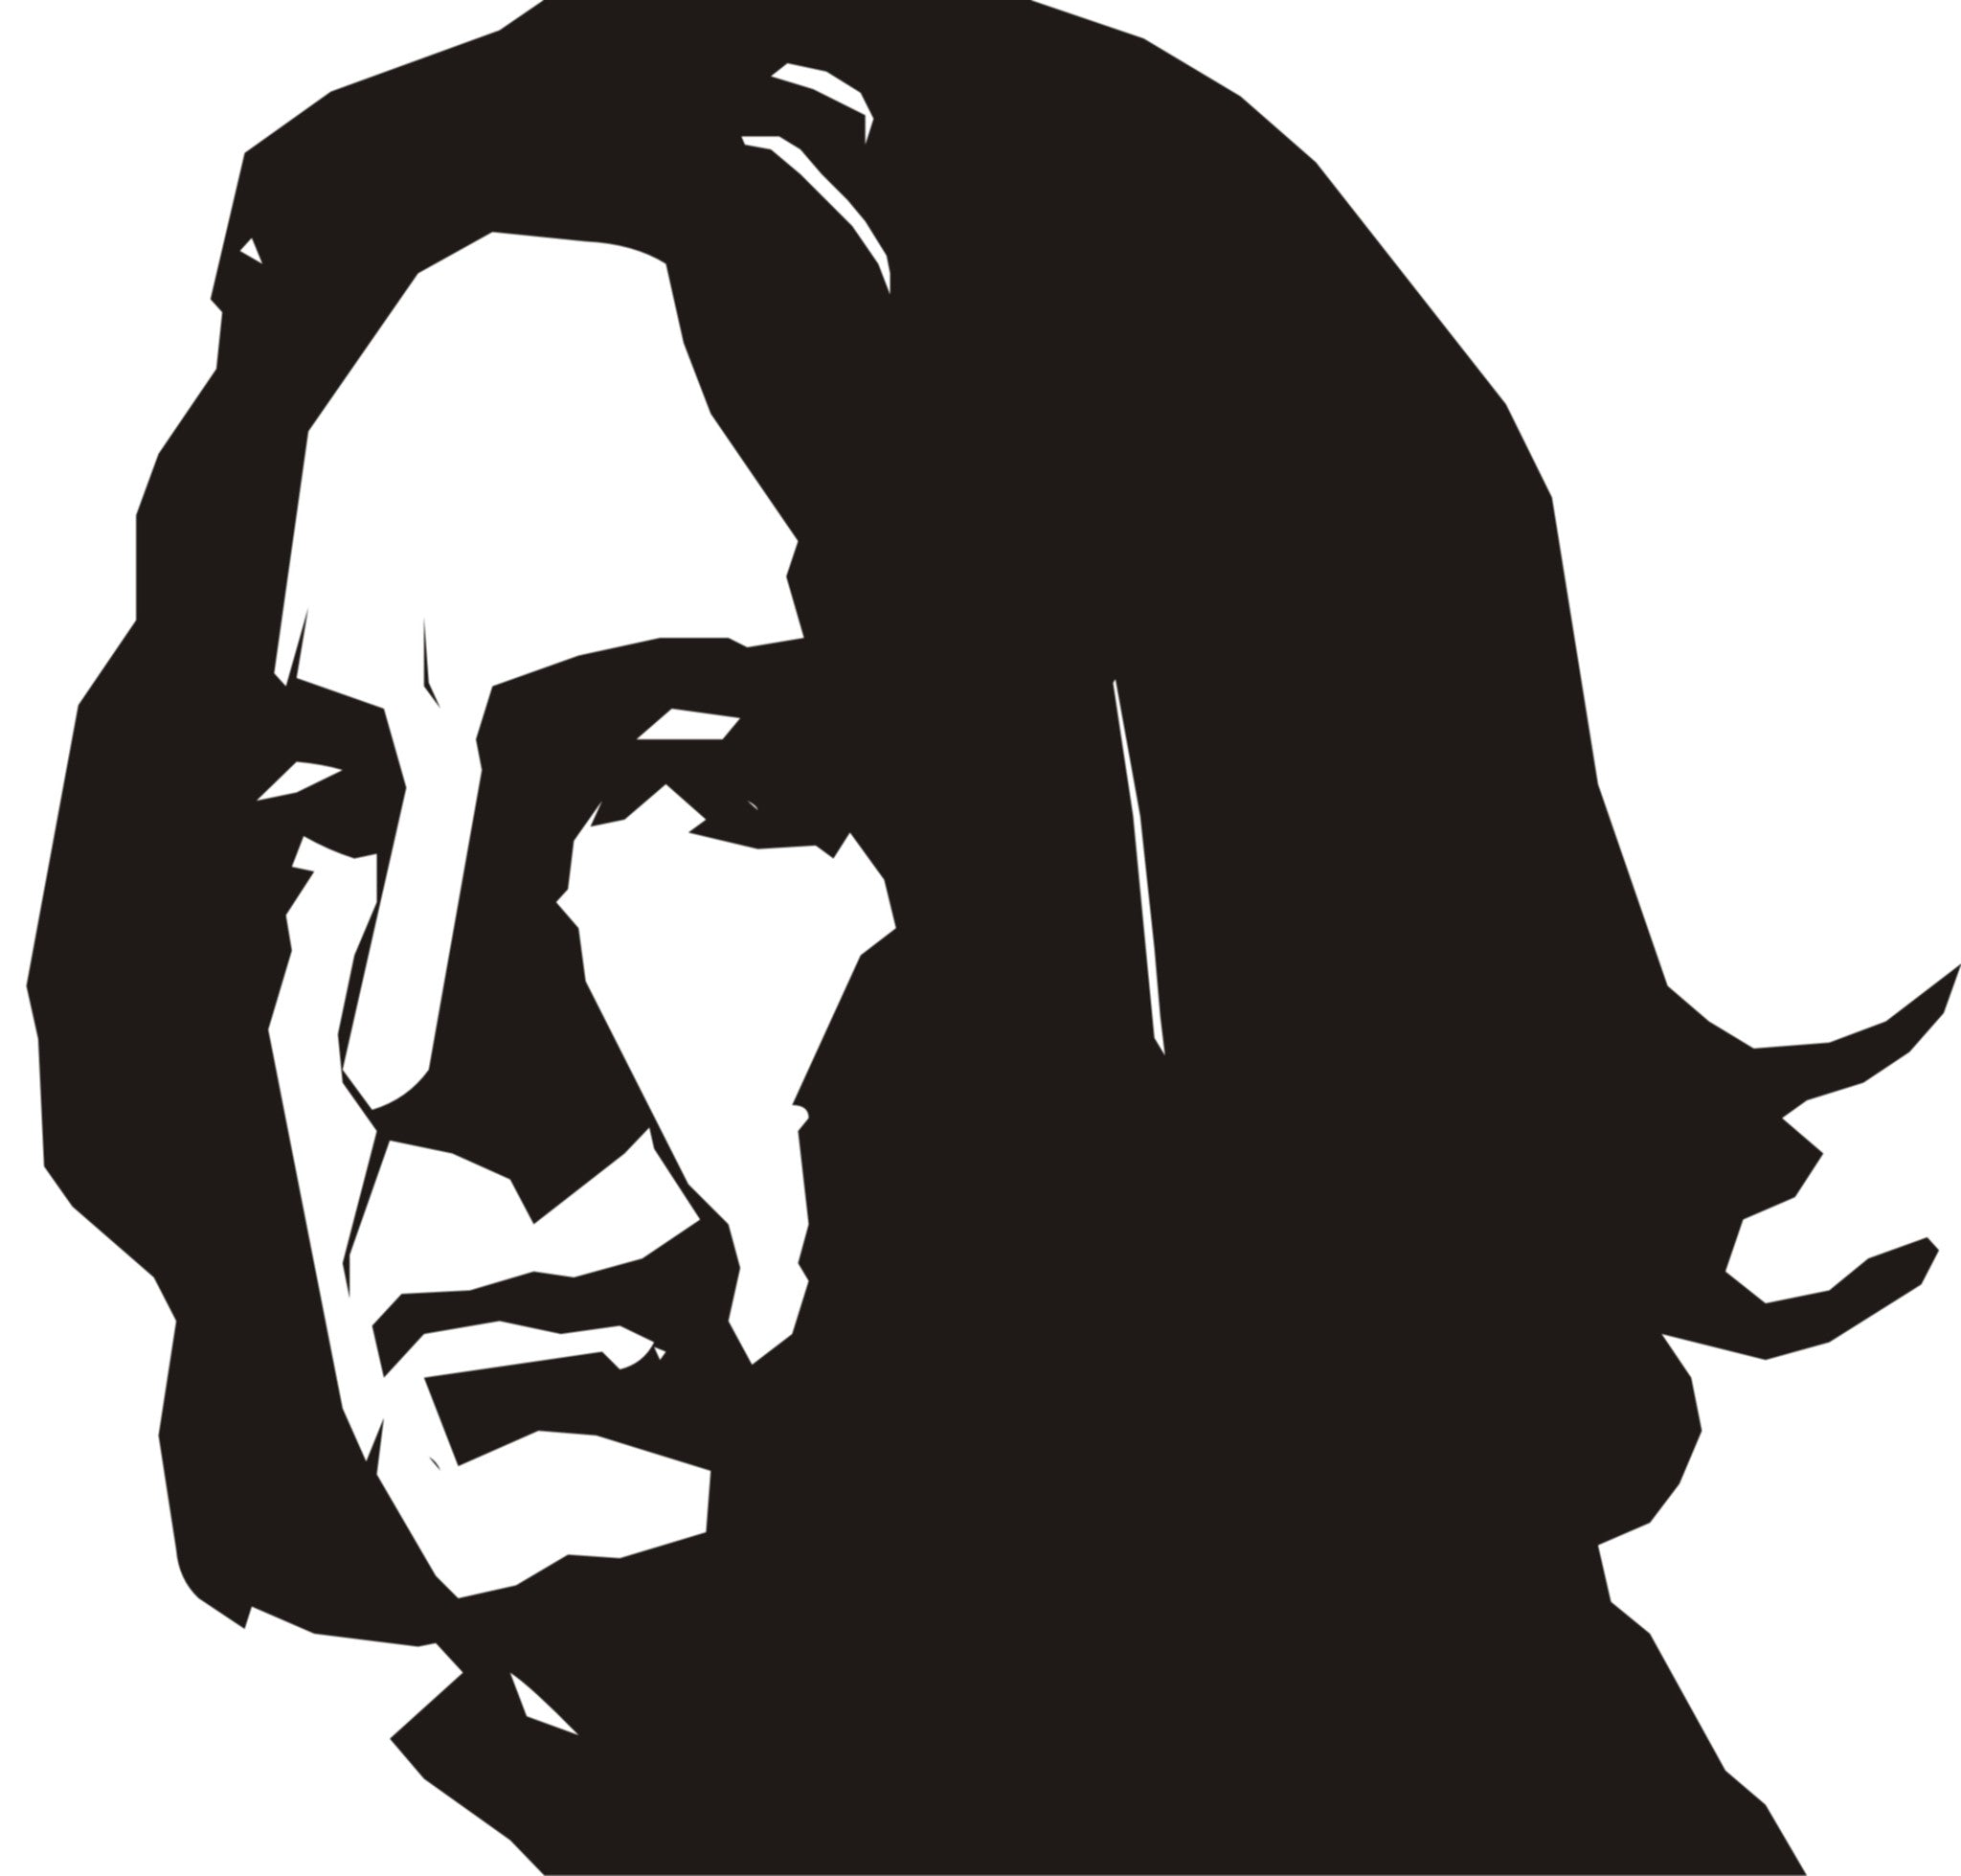 Professor Snape Wall Art Sticker Great Home Decor Decal